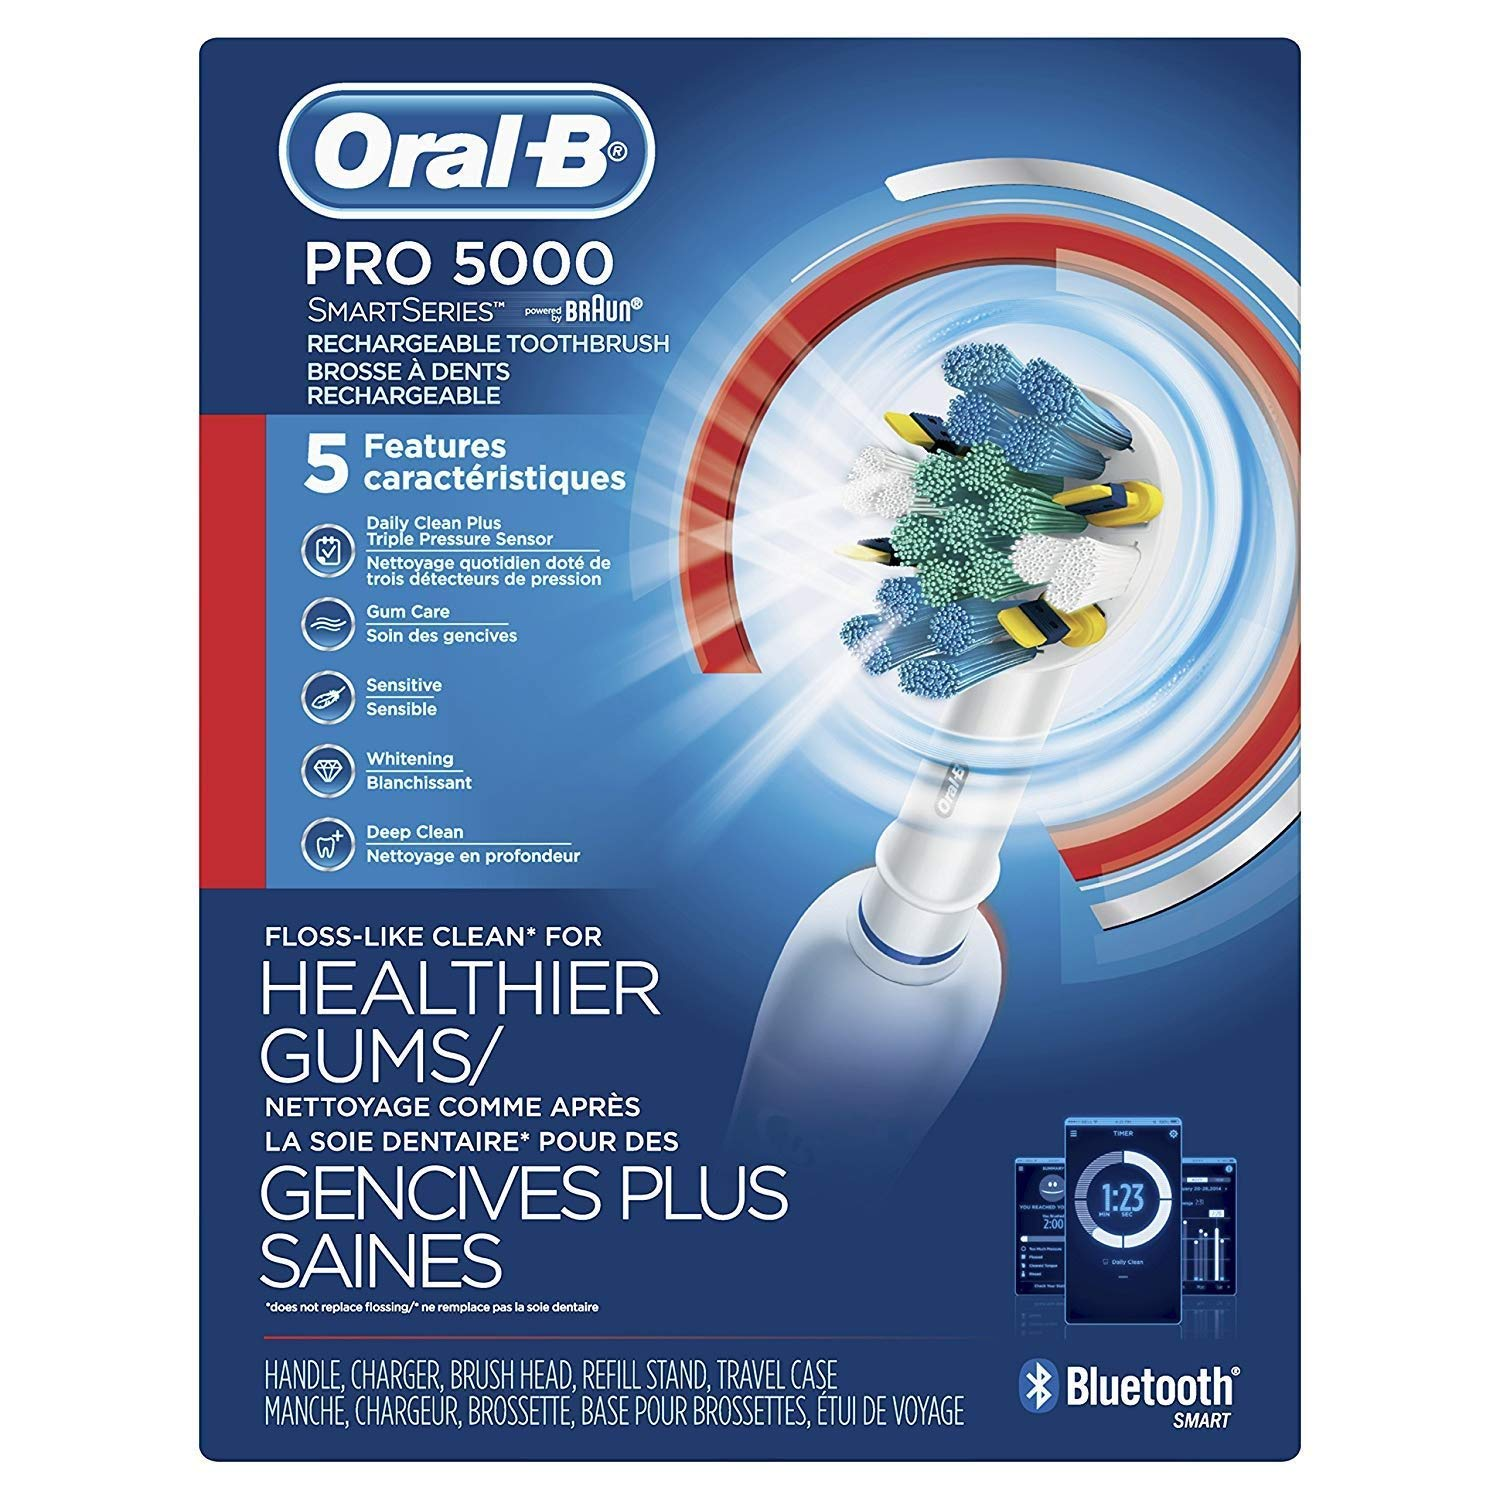 Oral-B Pro 5000 SmartSeries Power Rechargeable Electric Toothbrush with Bluetooth Connectivity, Amazon Dash Replenishment Enabled by Oral-B